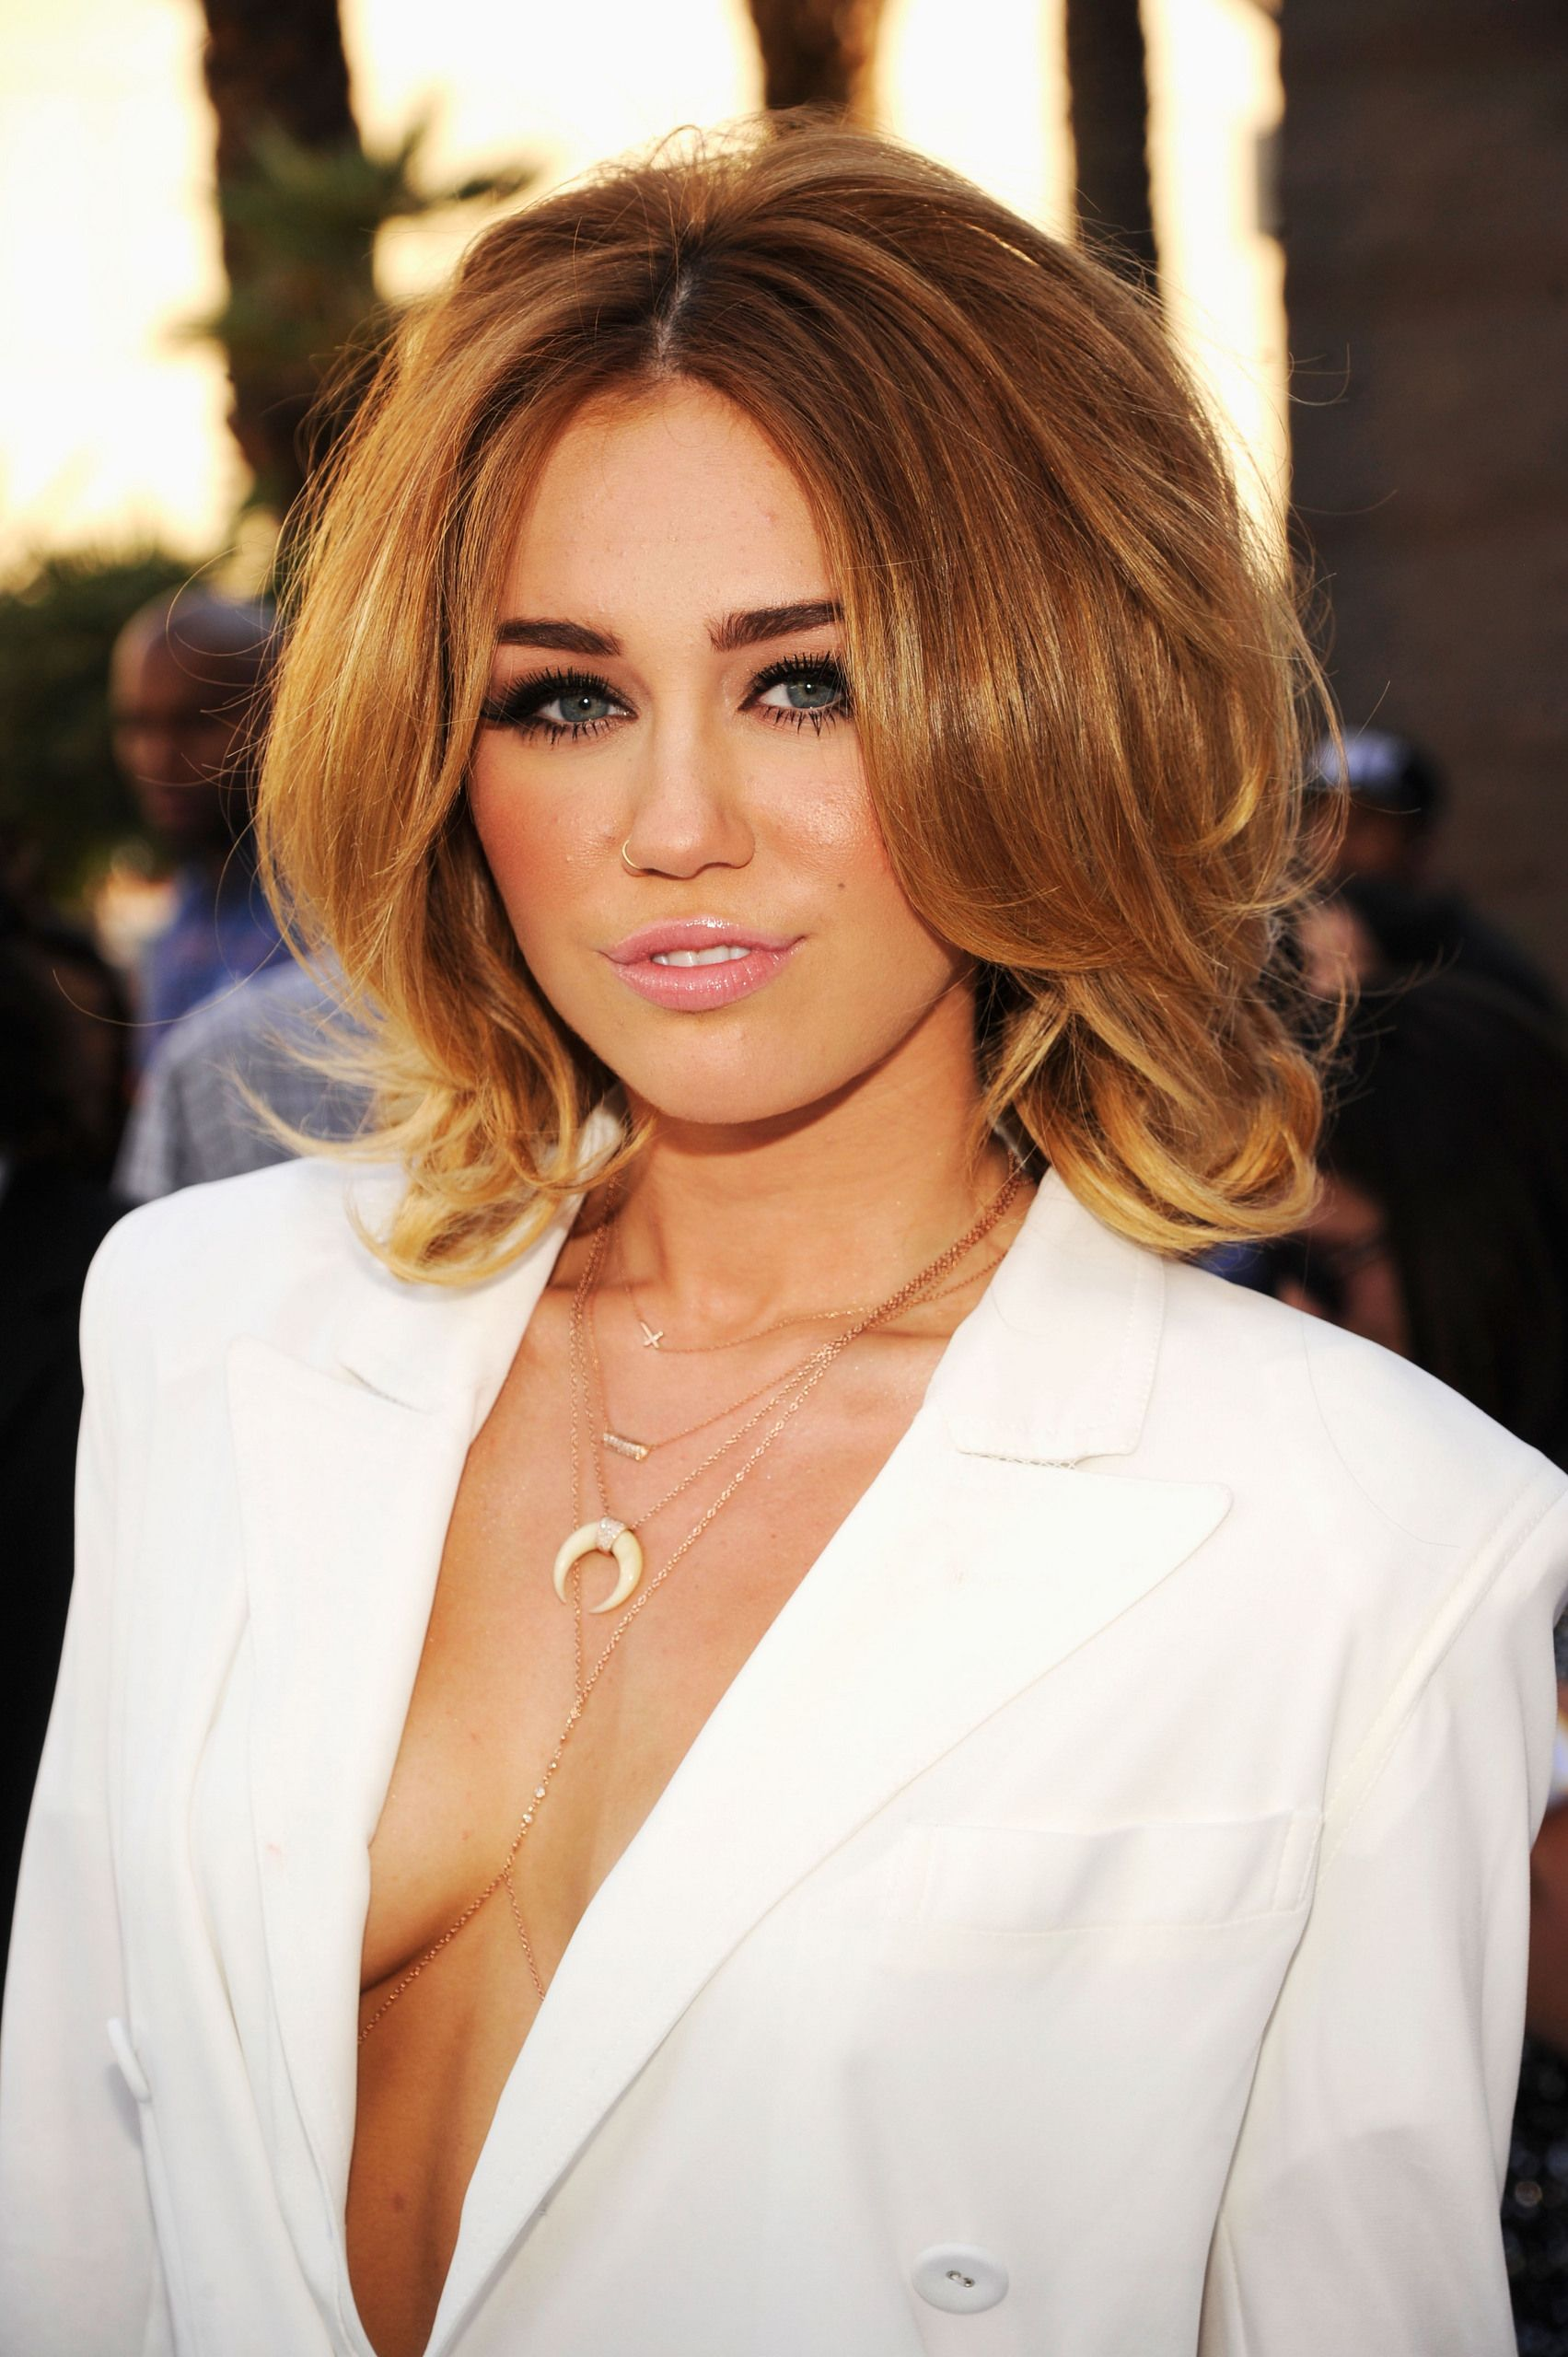 Miley Cyrus At The Billboard Music Awards 2012 Miley Cyrus Photo